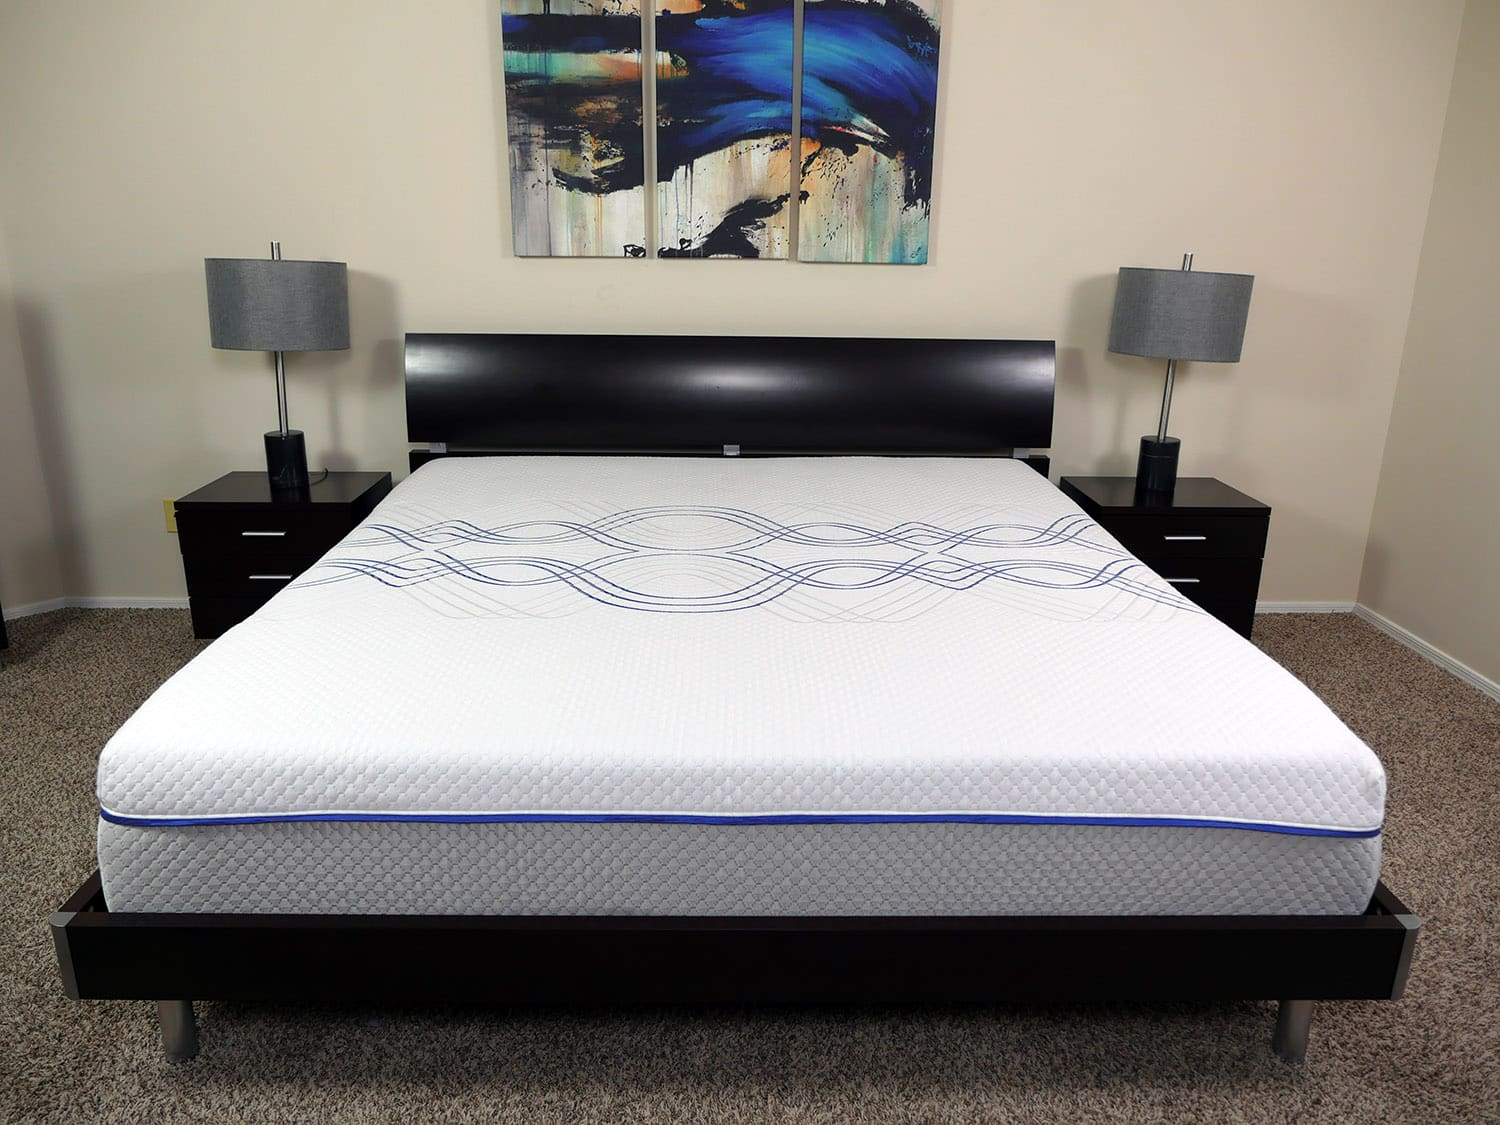 Eluxurysupply Hybrid Mattress Review Sleepopolis